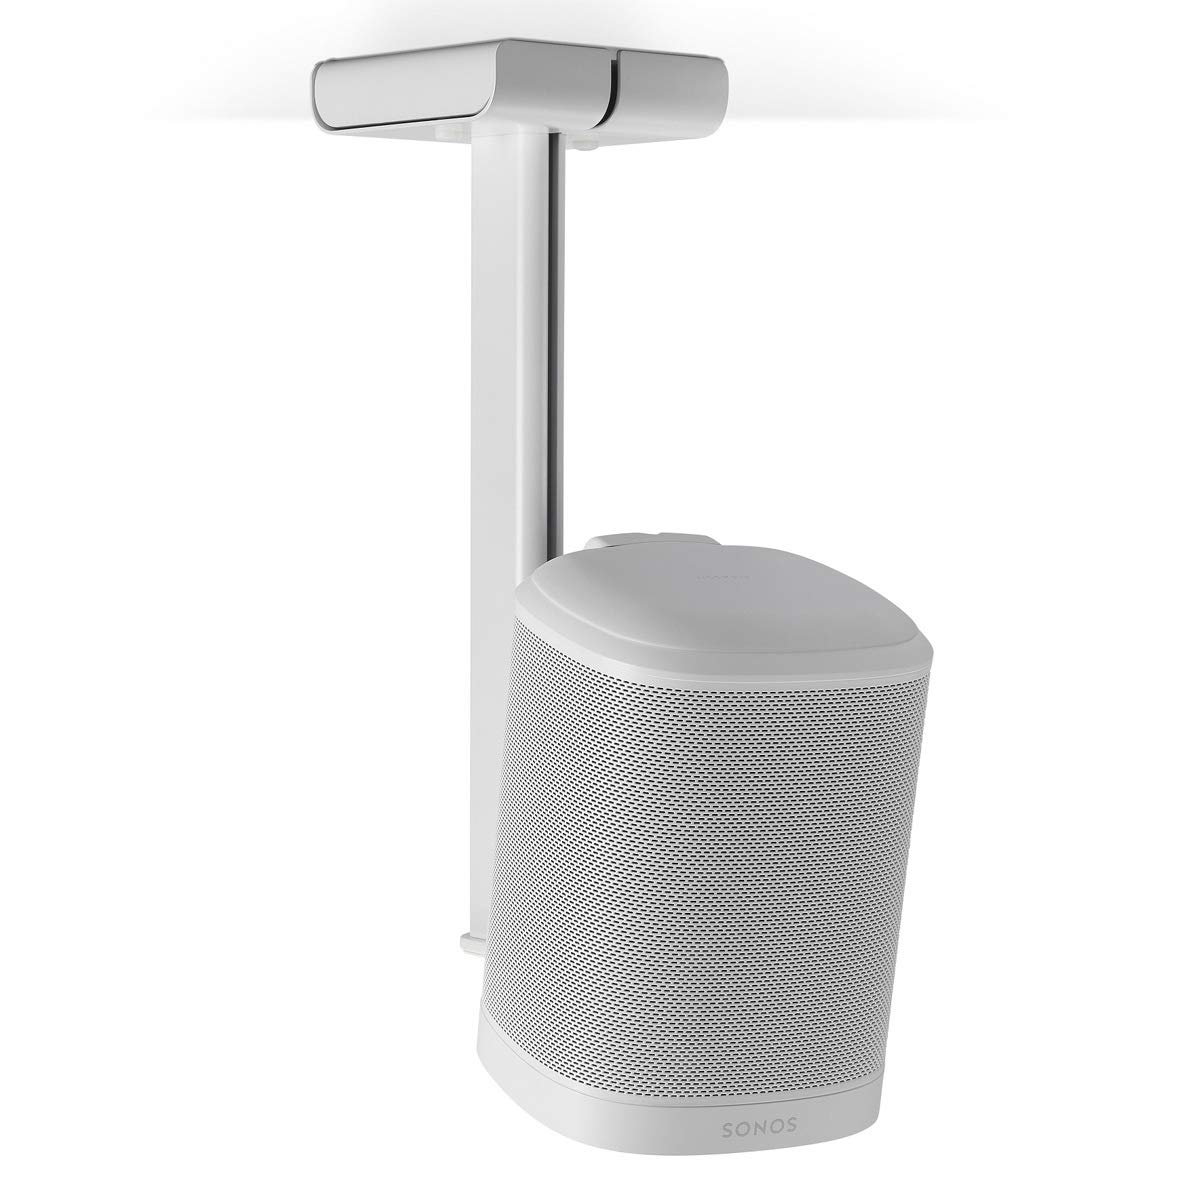 Flexson Ceiling Mount for Sonos One or Play:1 (White)